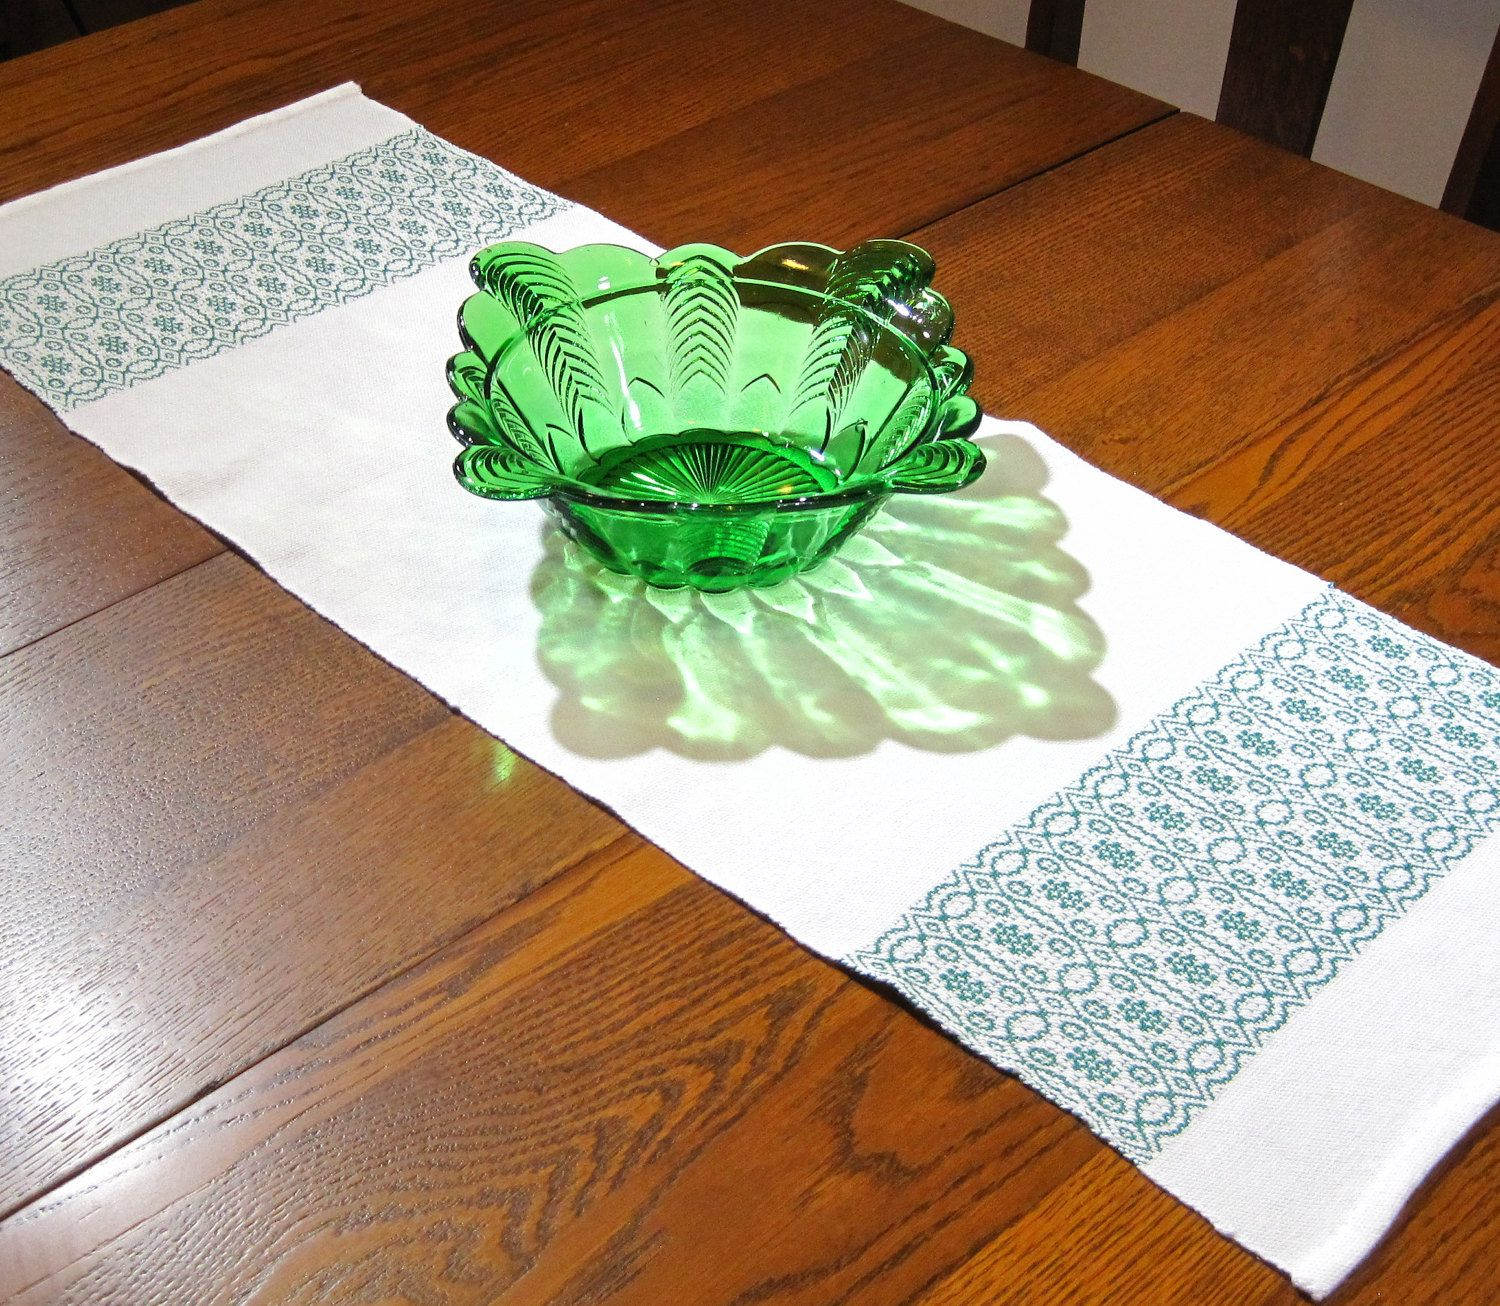 36 Handwoven Table Runner Hand Woven Coffee Table Runner Green And White Table Runner Whig Rose Table Runner 36 Inch Christmas Table Runner Hand Weaving Christmas Table Runner Stained Glass Night Lights